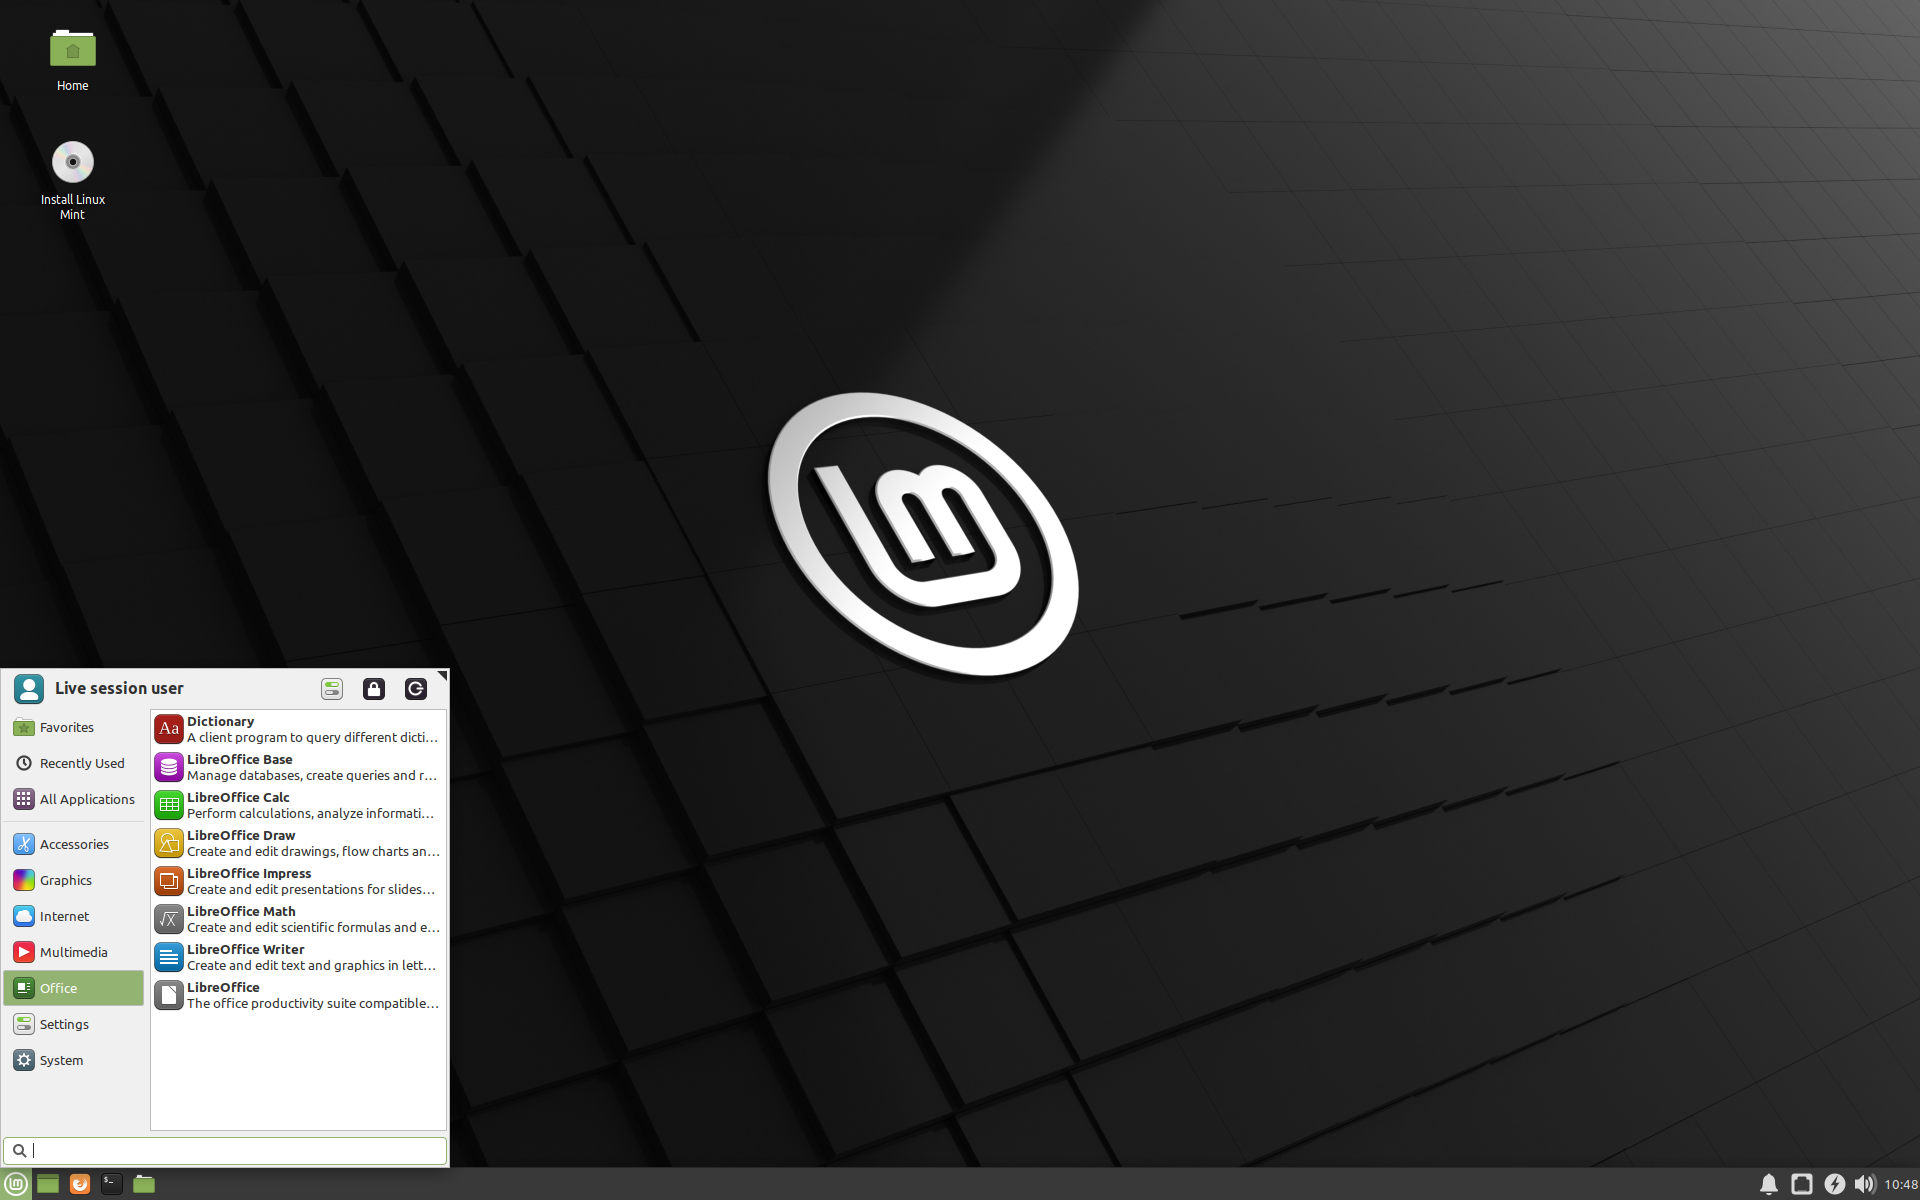 Linux Mint 20.2 Beta released 1